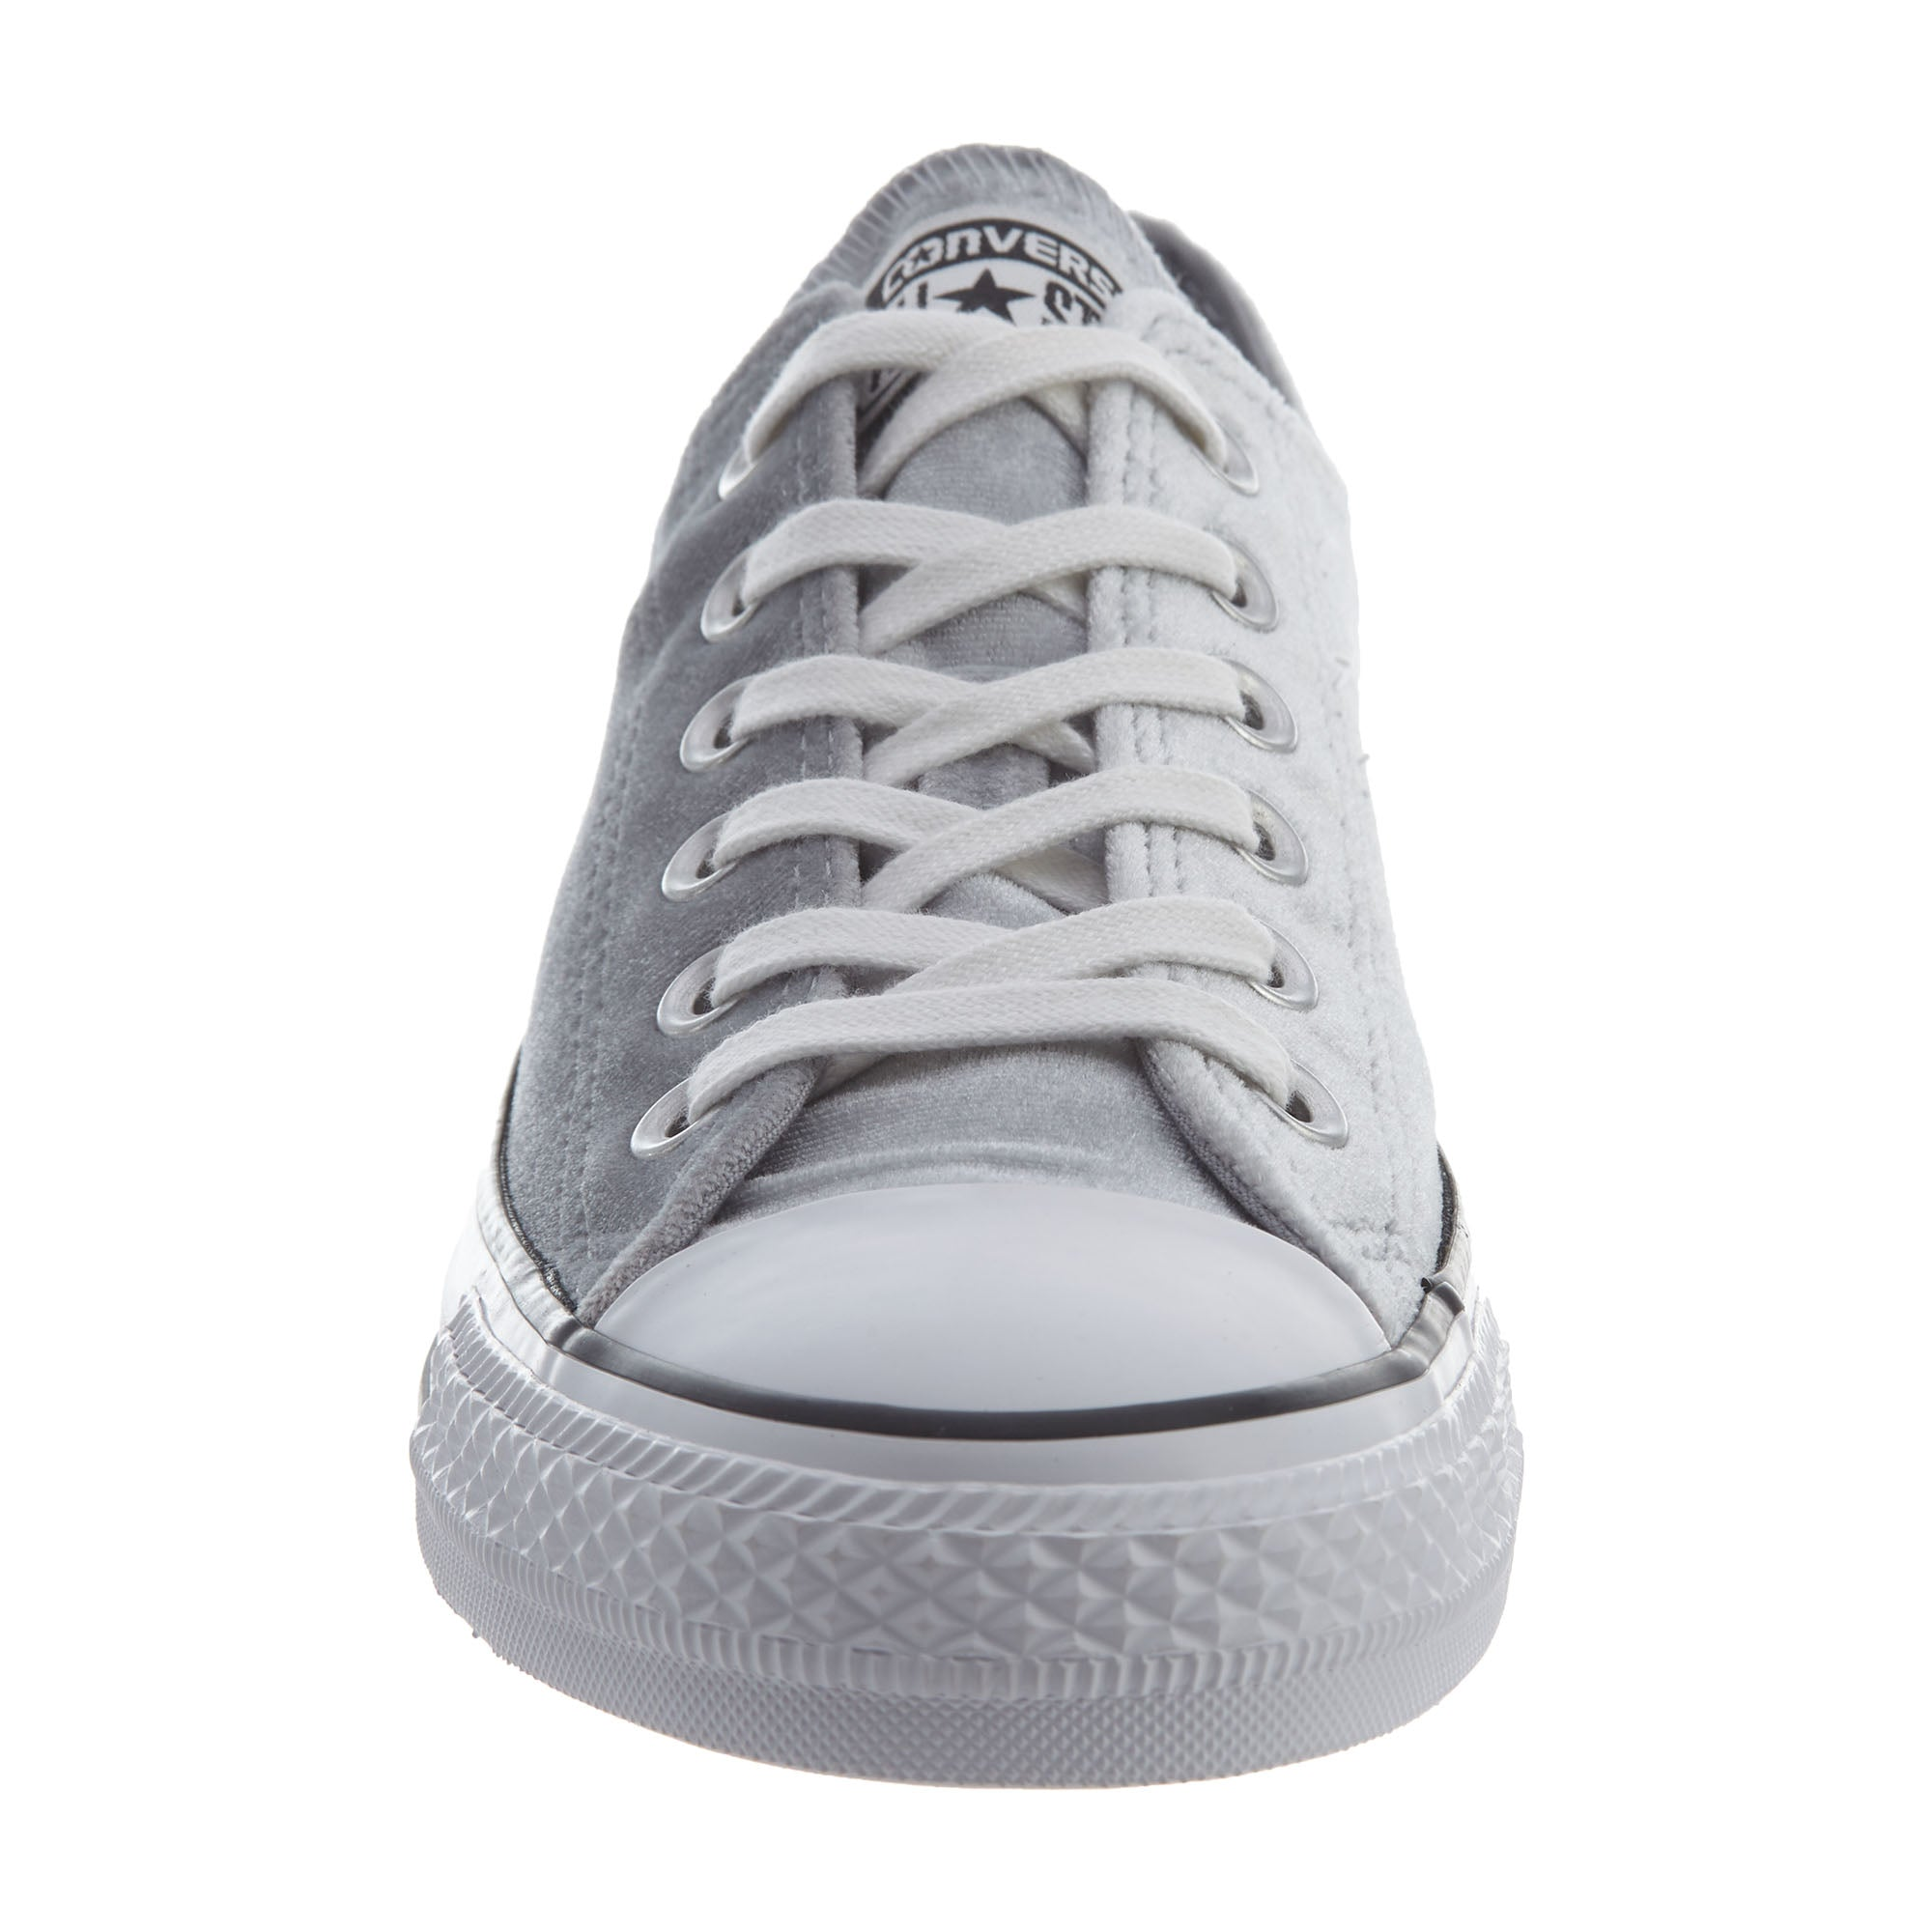 db2e4191c422 Converse Chuck Tailor All Star Ox Womens Style   557990f-WOLF GREY WHI